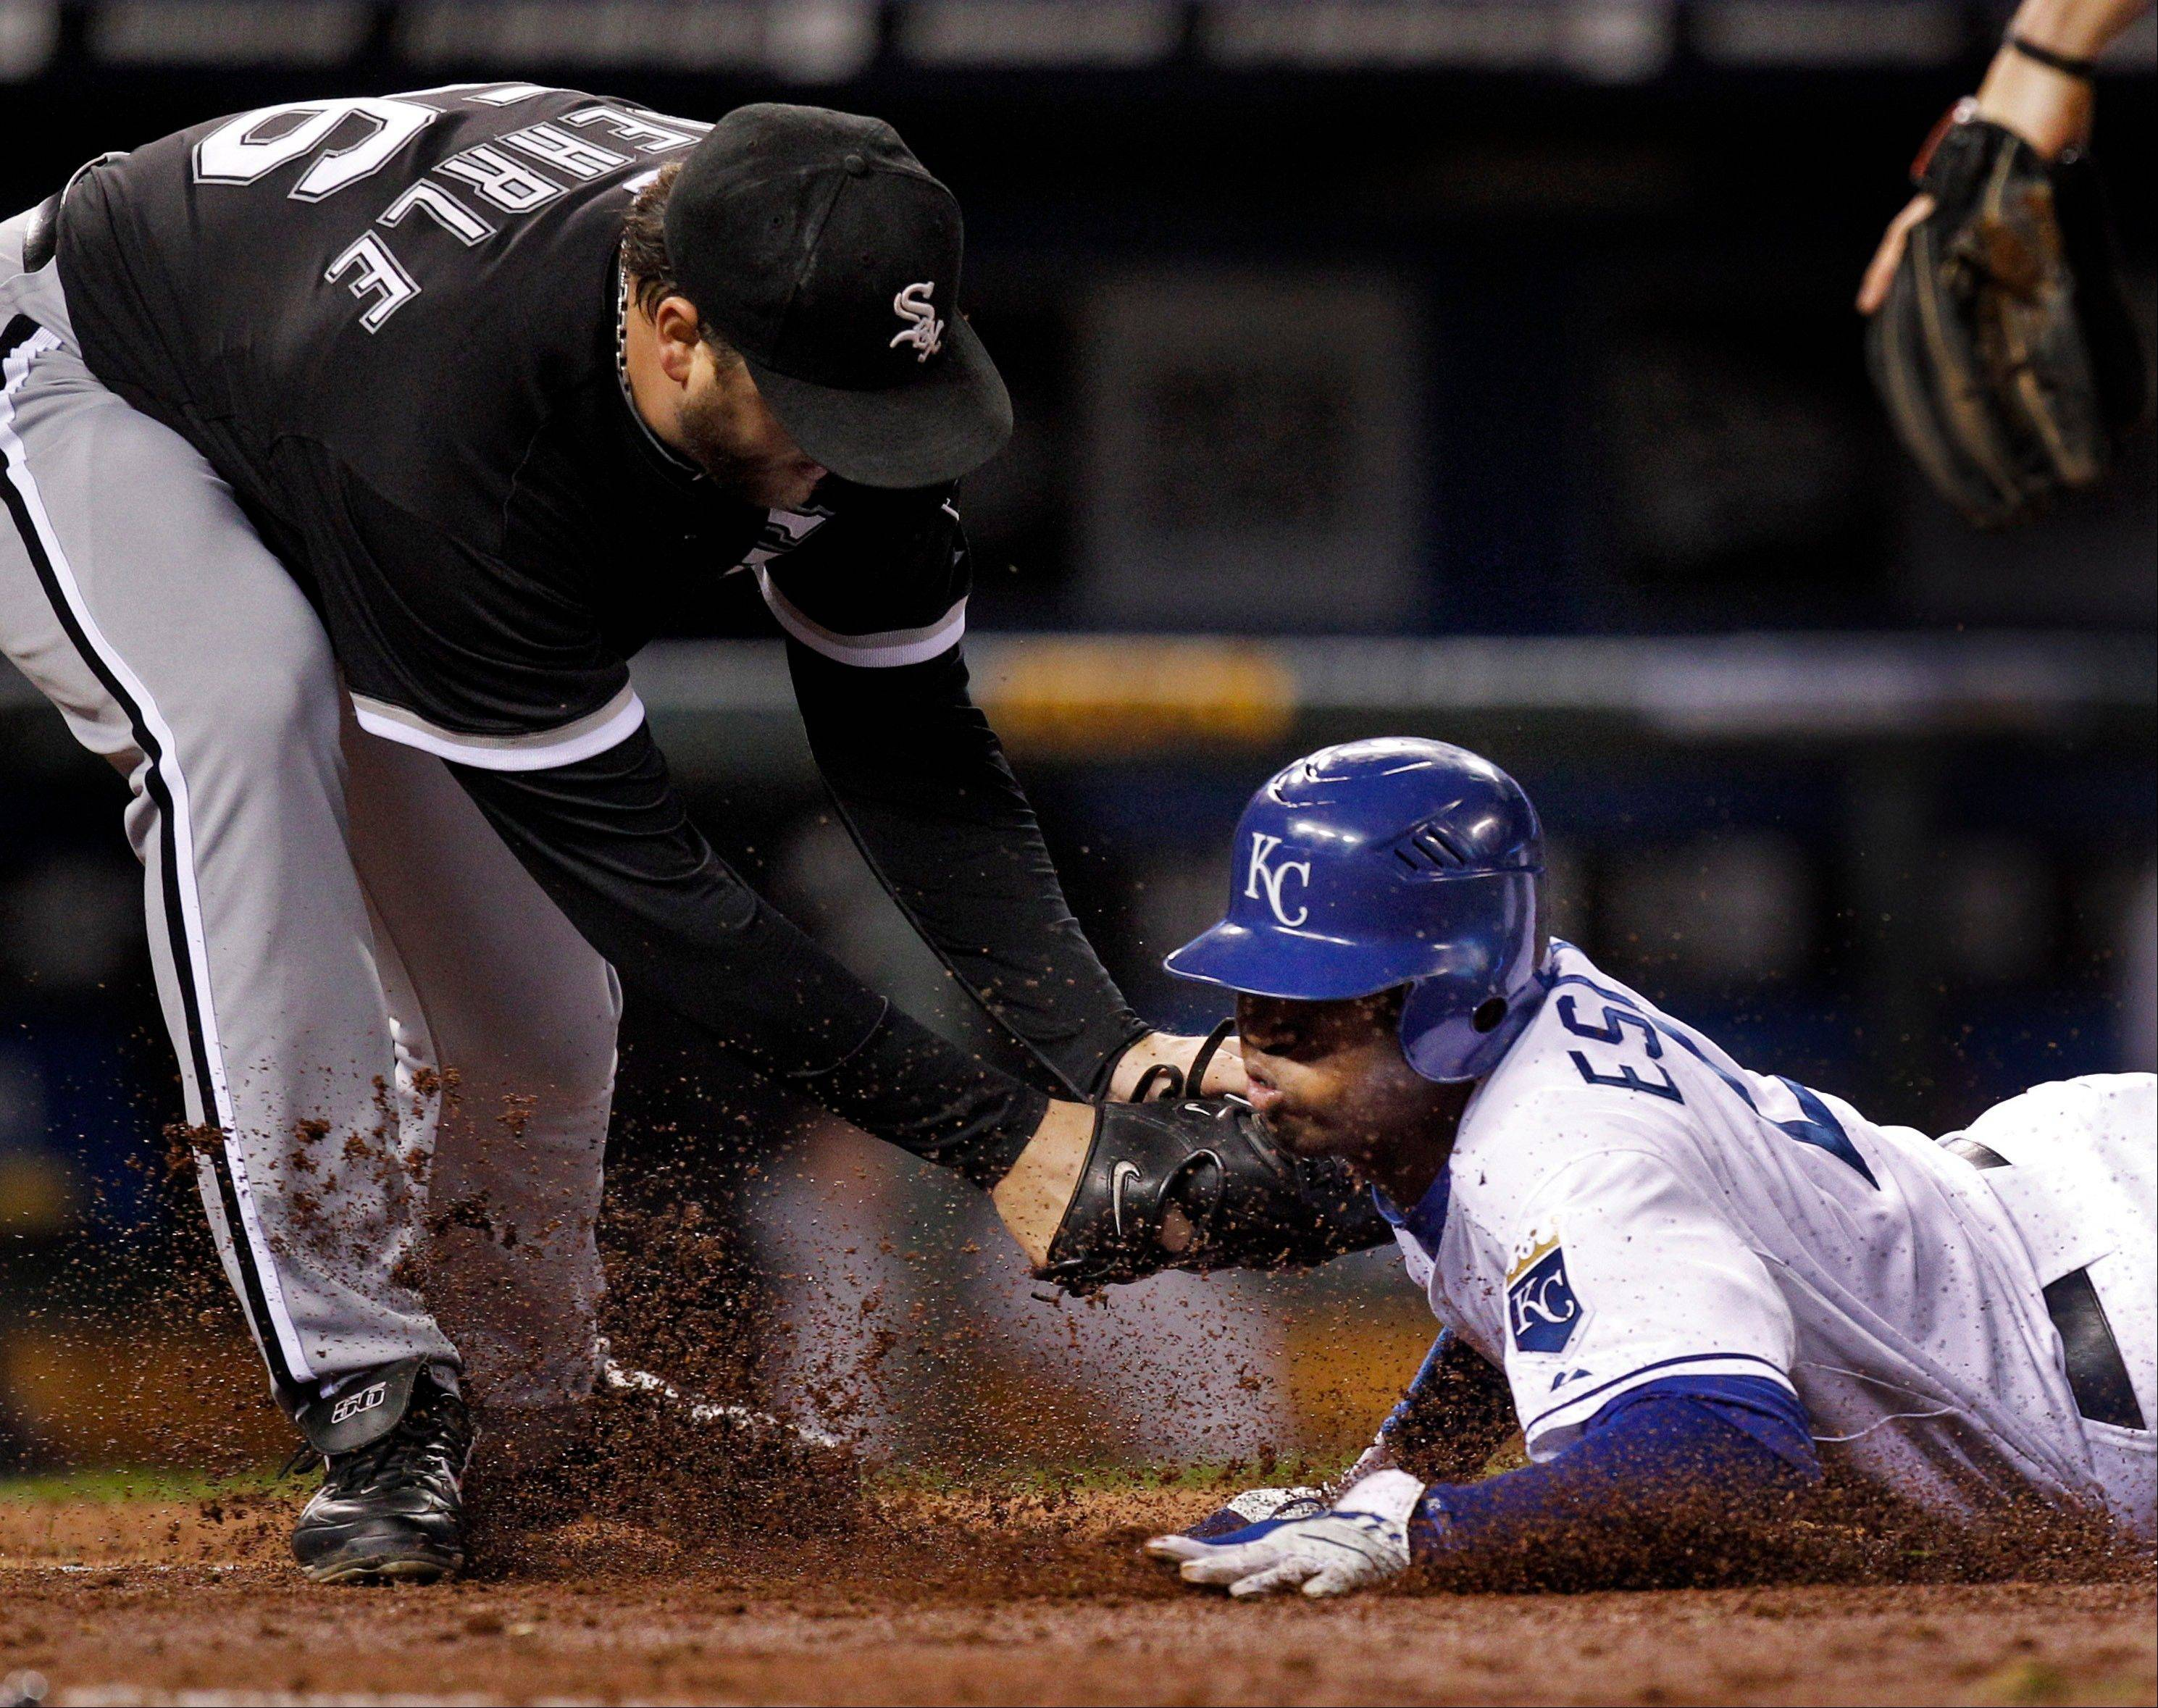 The Royals' Alcides Escobar is tagged by Chicago White Sox starting pitcher Mark Buehrle Thursday during the fourth inning.